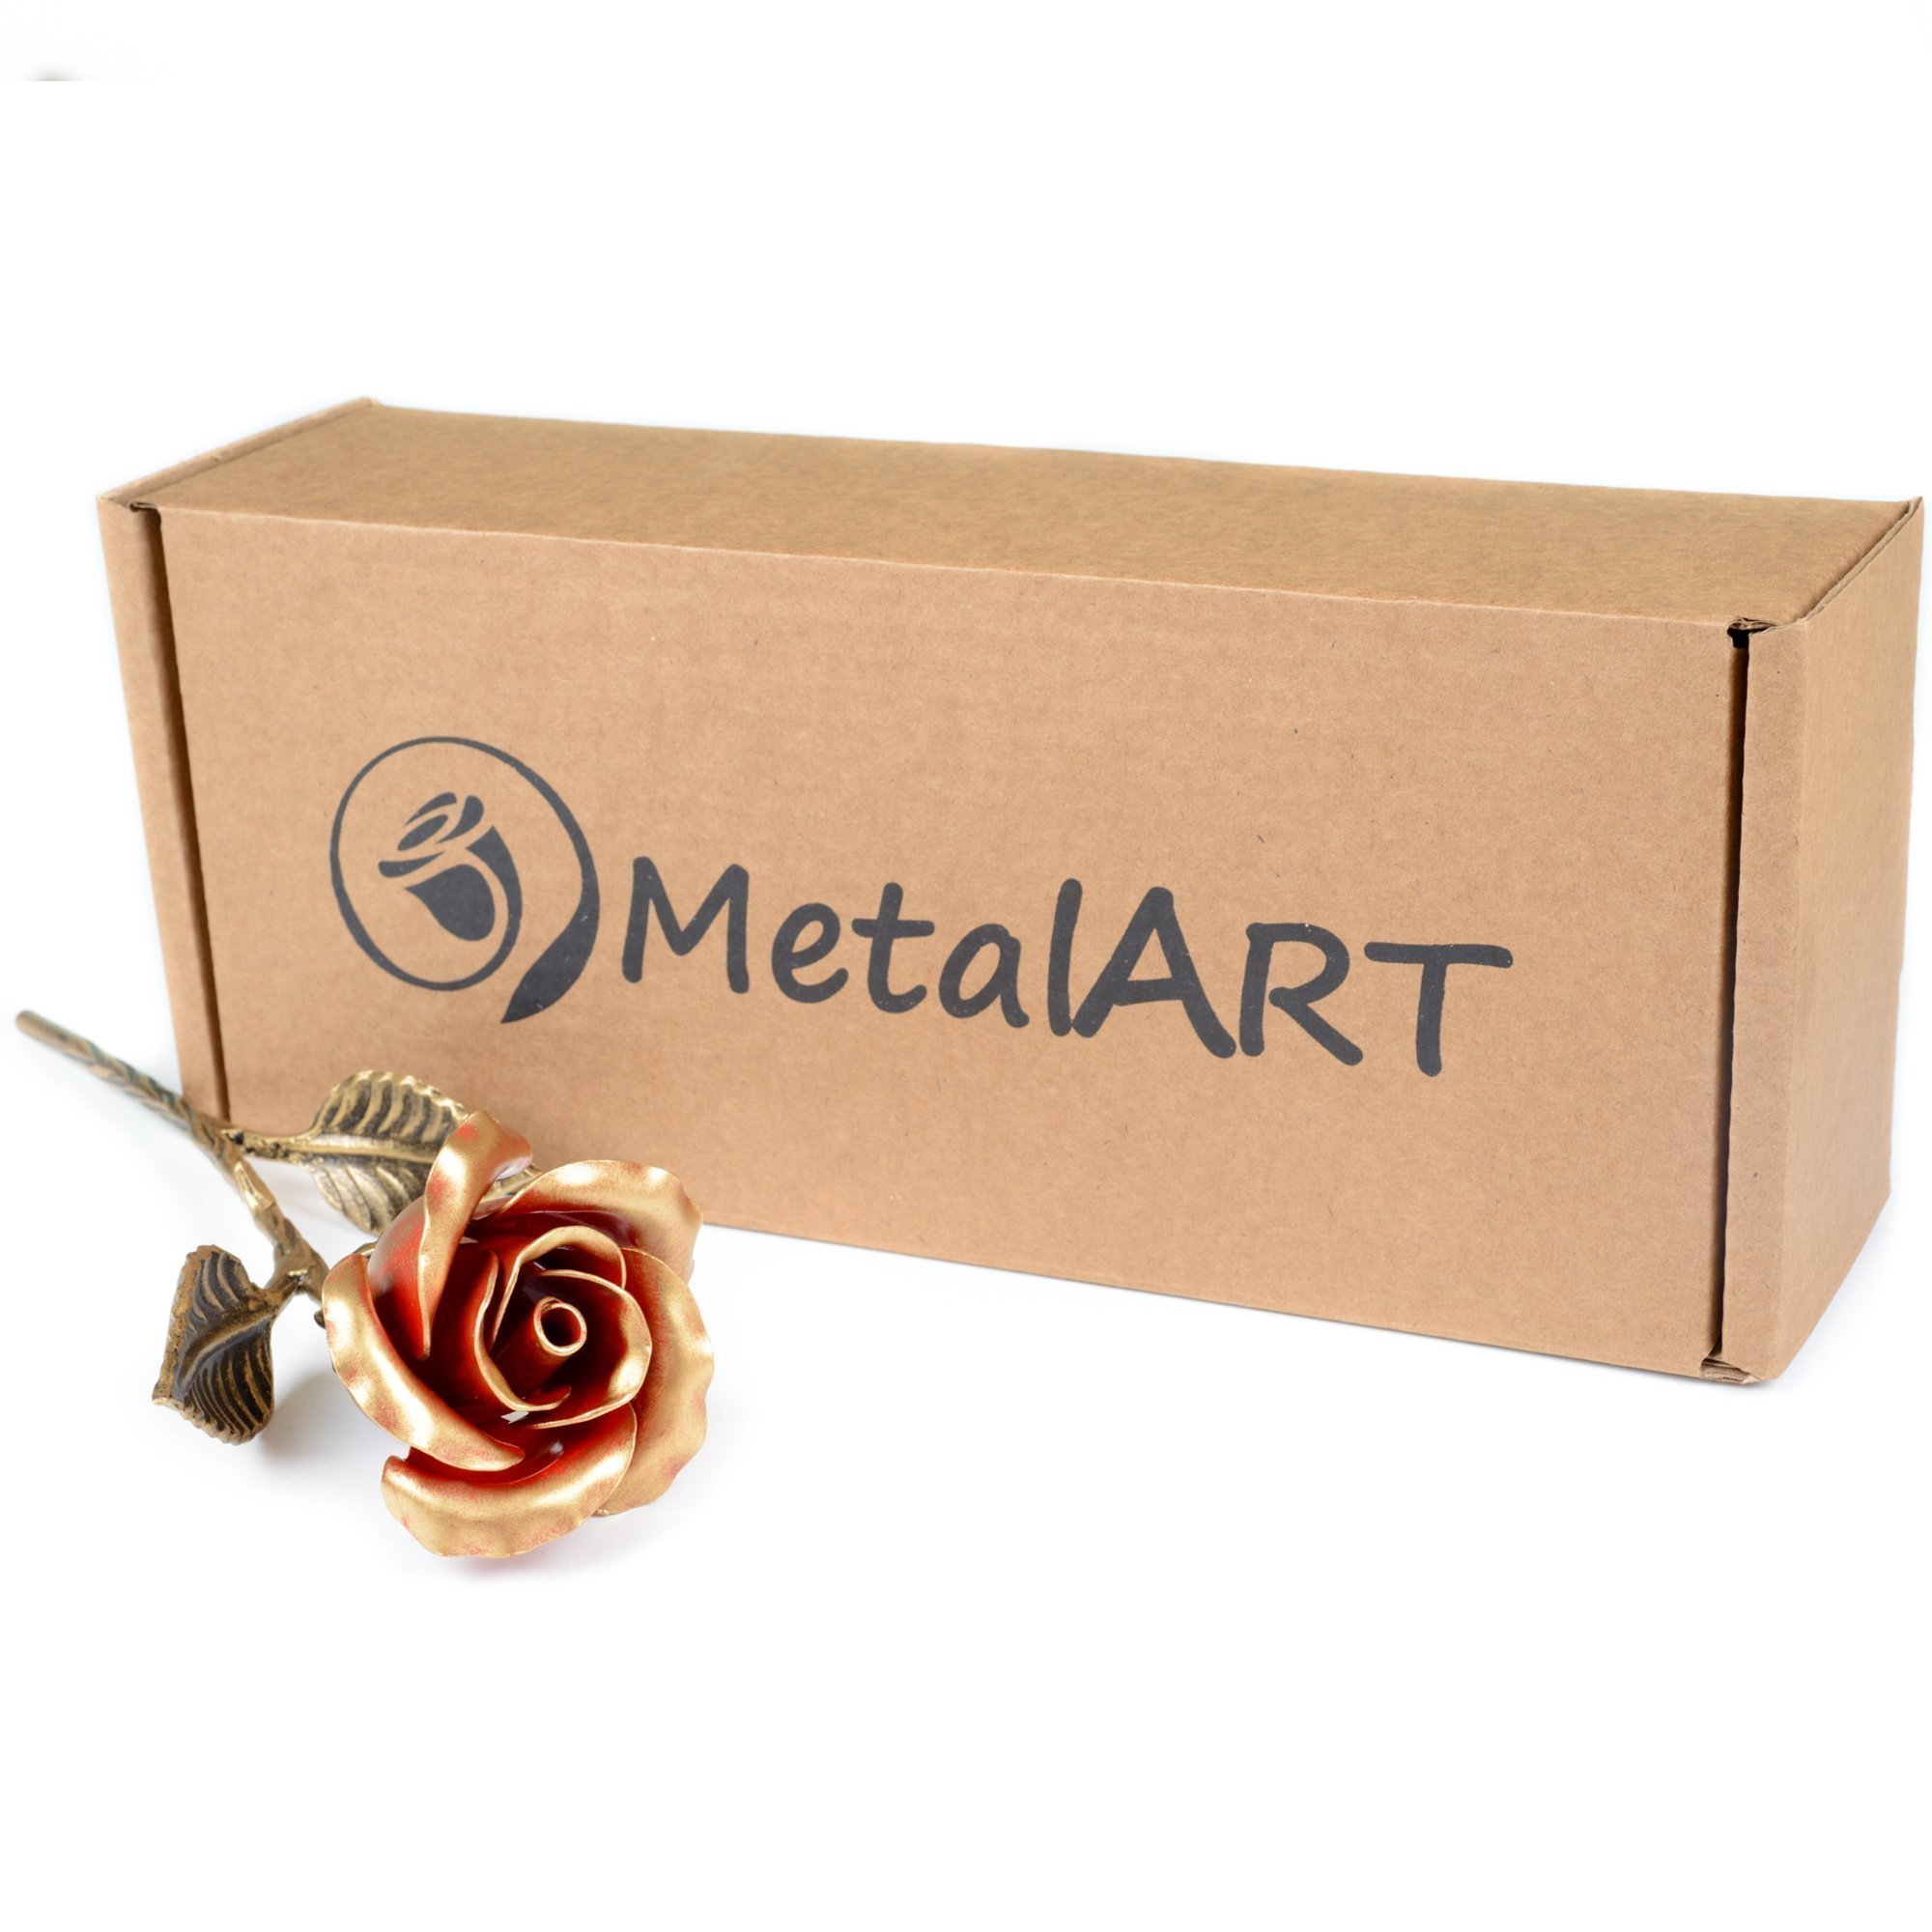 Hand Forged Iron Rose - 11th / 6th Year Wedding Anniversary Gift for Her/Red Metal Rose Steel Rose by MetalArt (Image #5)